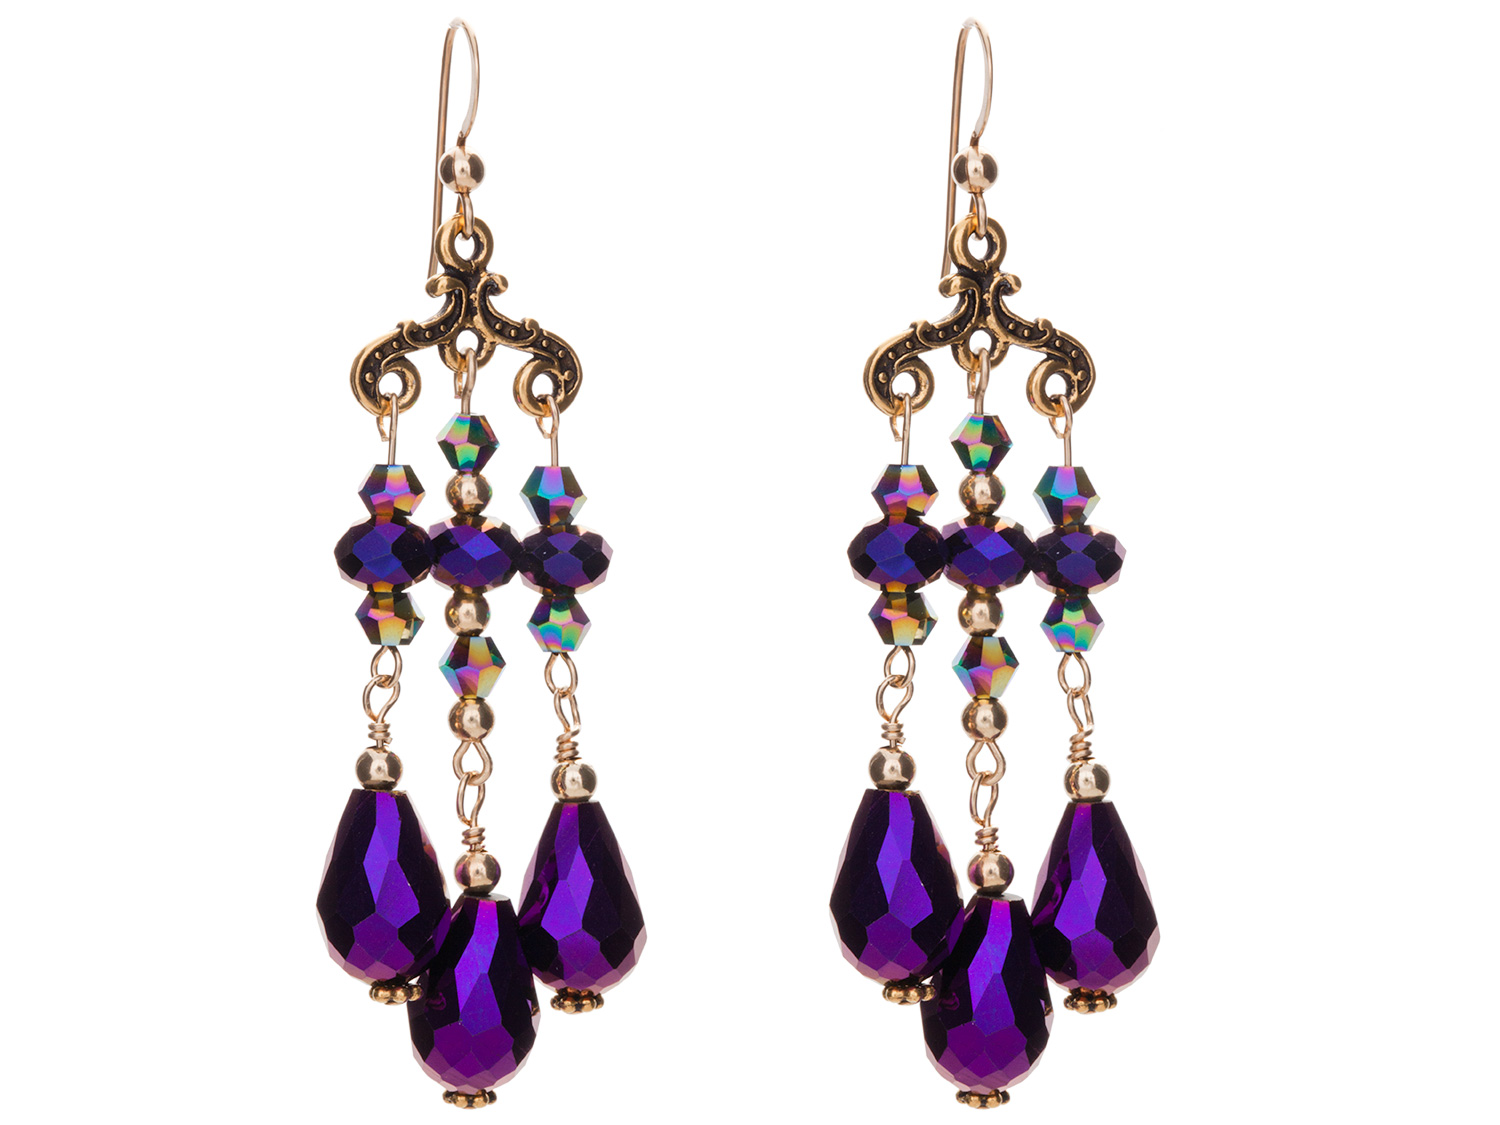 Dazzling Plum Earrings